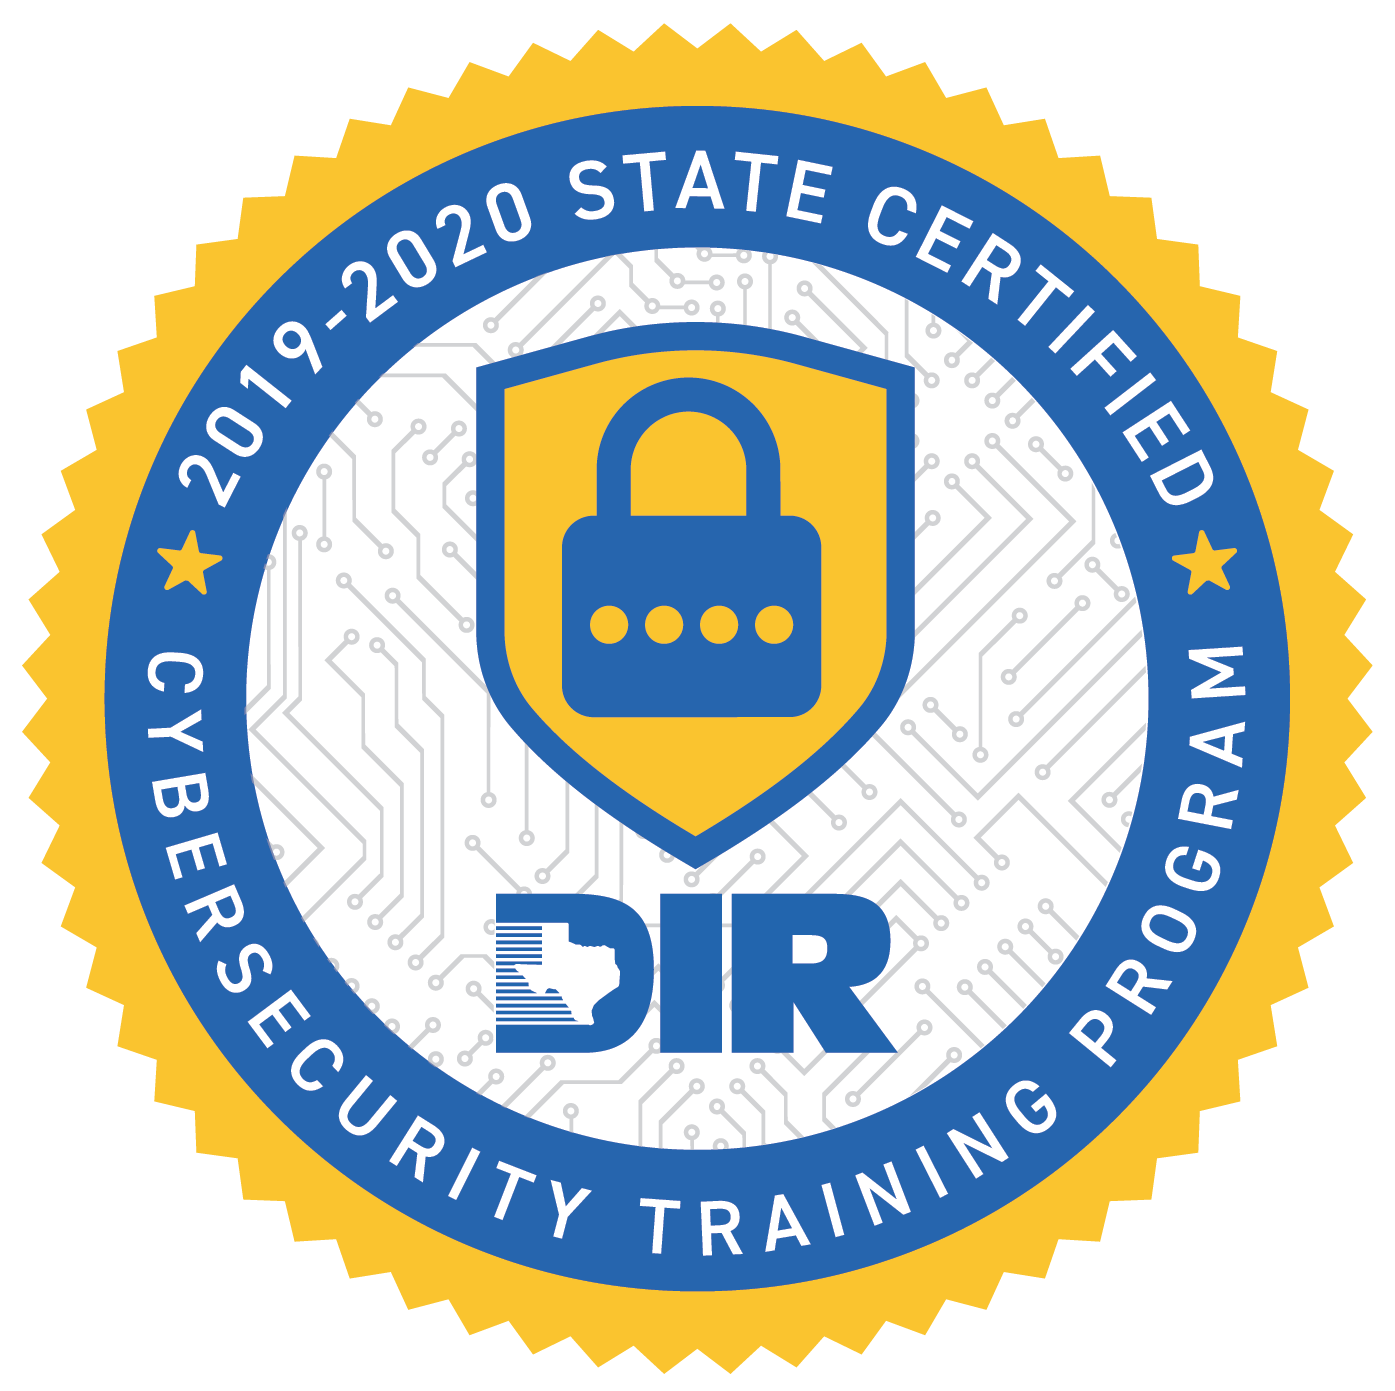 Cybersecurity Training Logo